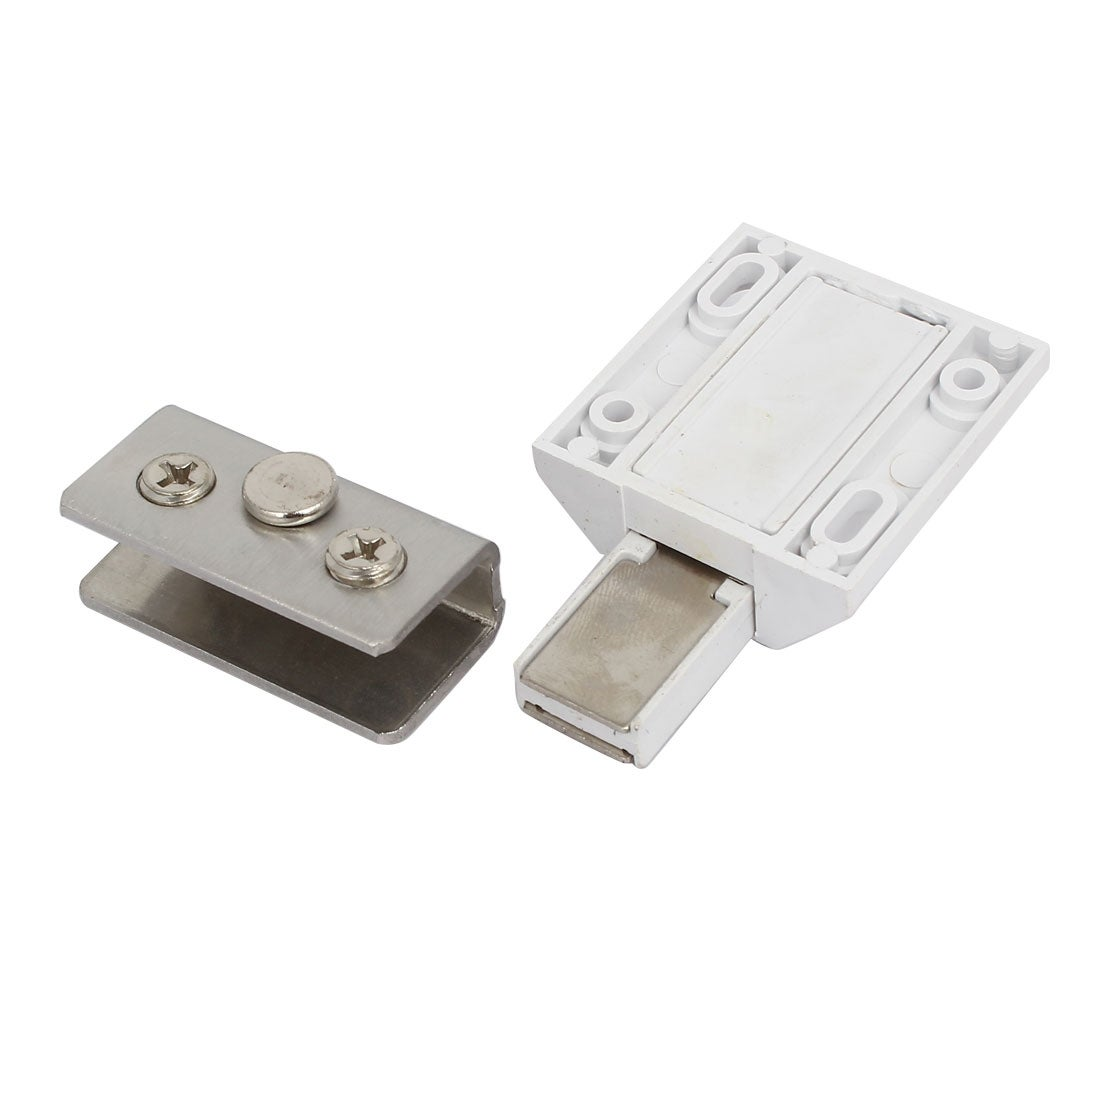 Cabinet Shower Door Pivot Hinge Magnetic Catch Latch Glass Clamps Set